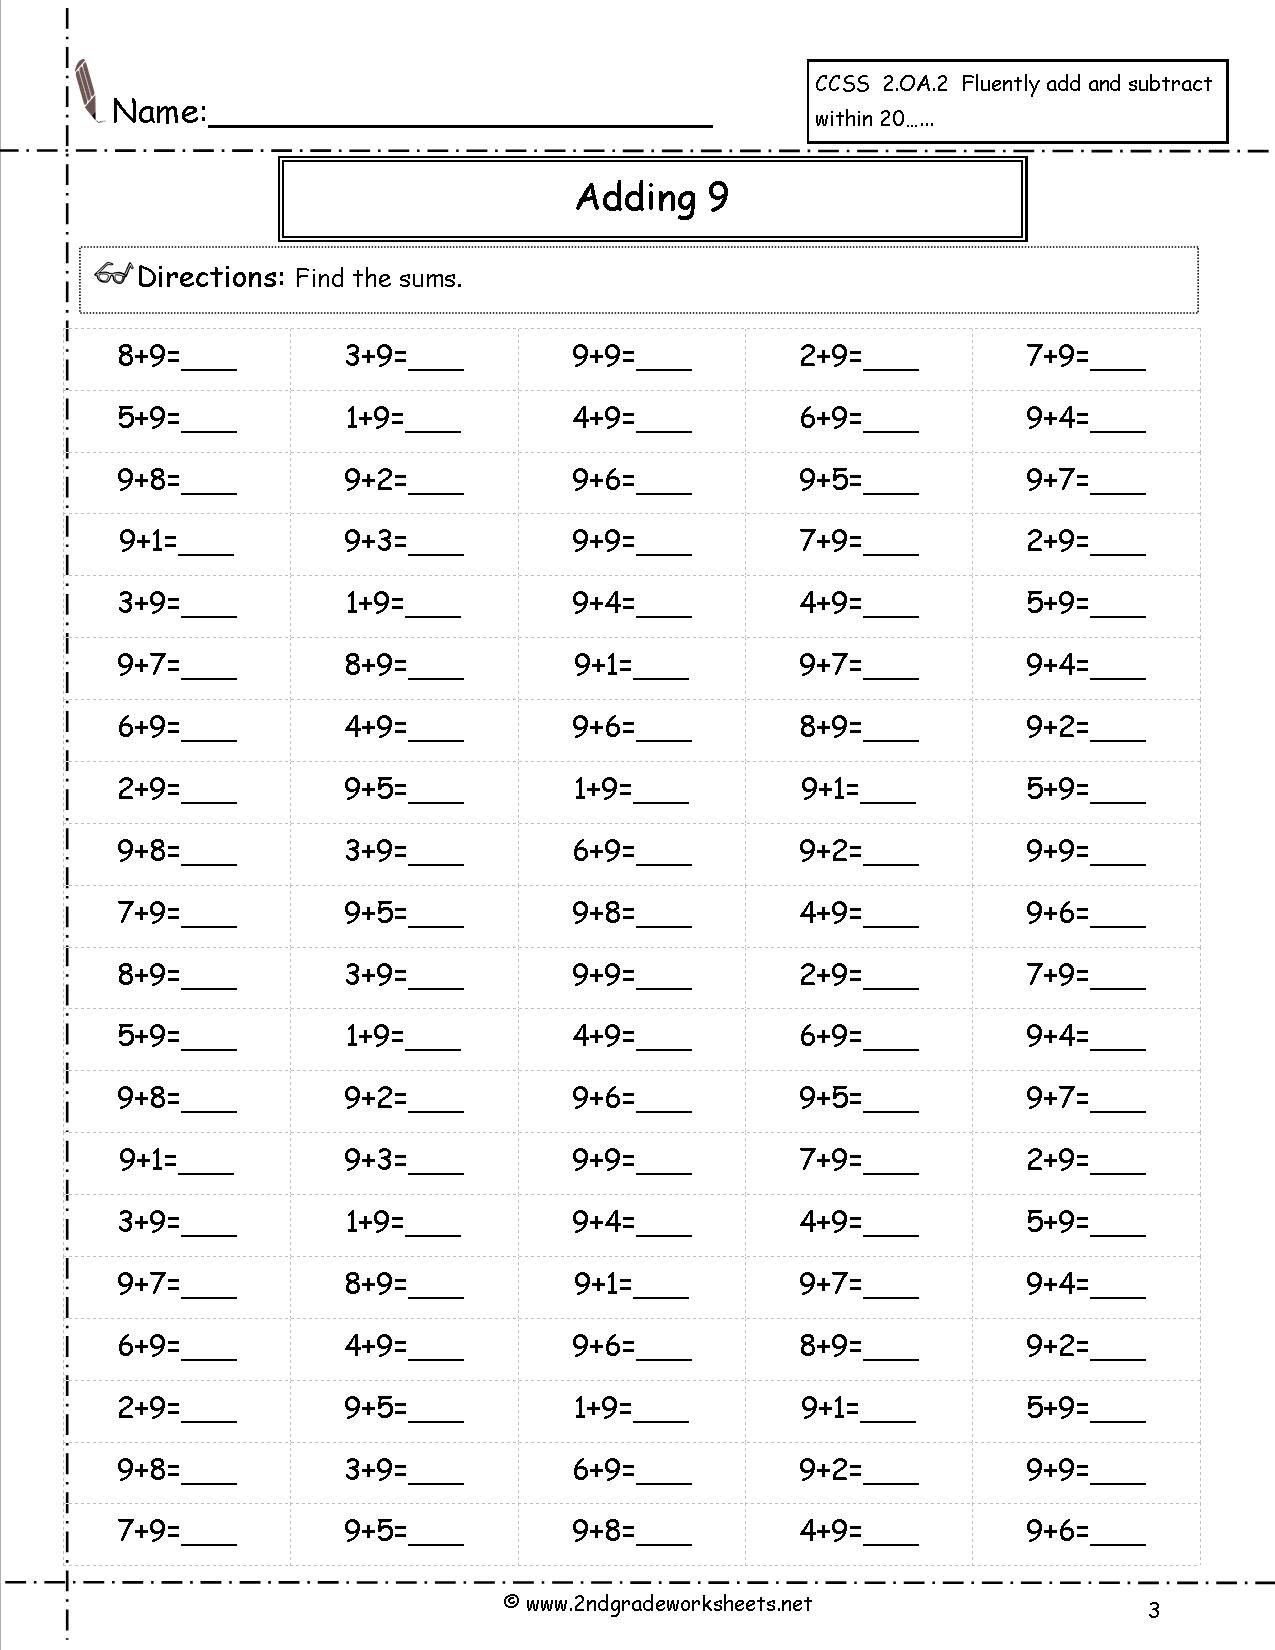 small resolution of Adding 9 worksheet   1st grade math